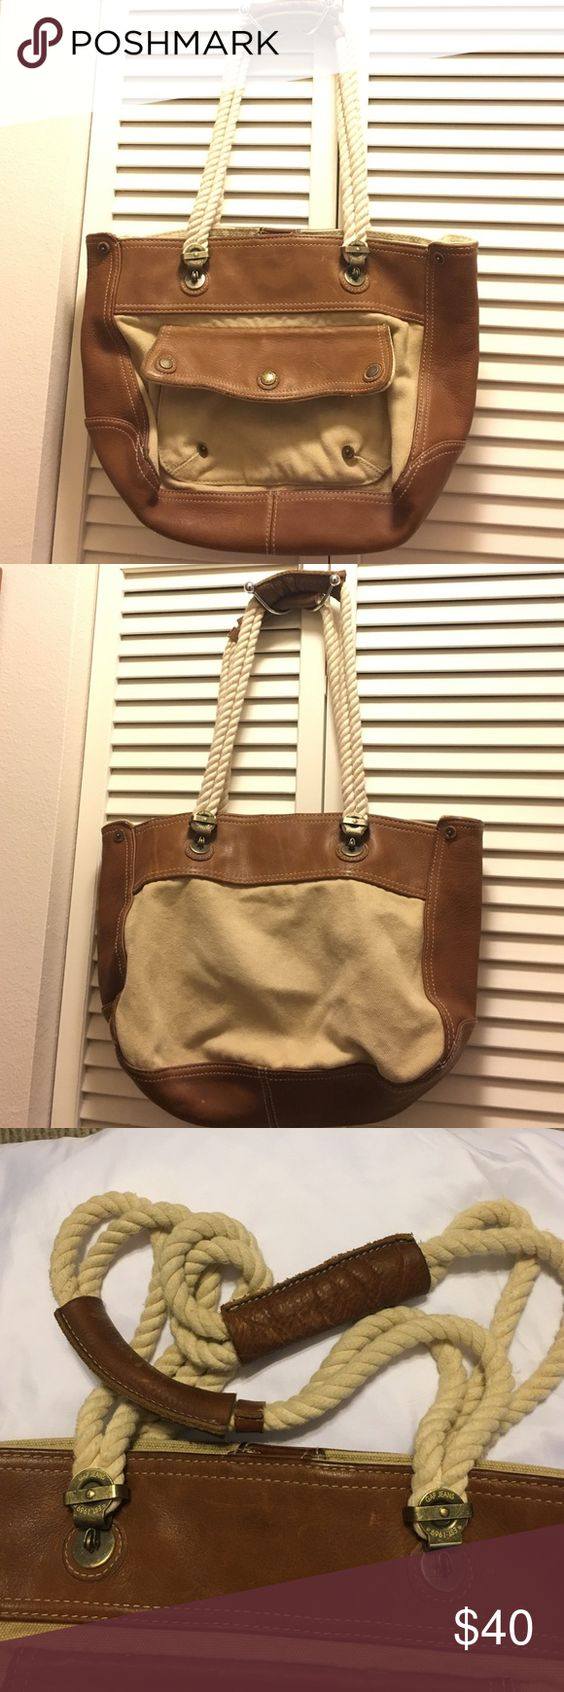 Gap Purse with rope straps Brown leather and tan canvas purse with braided rope straps. Good condition,very roomy inside. It will make someone happy... GAP Bags Shoulder Bags